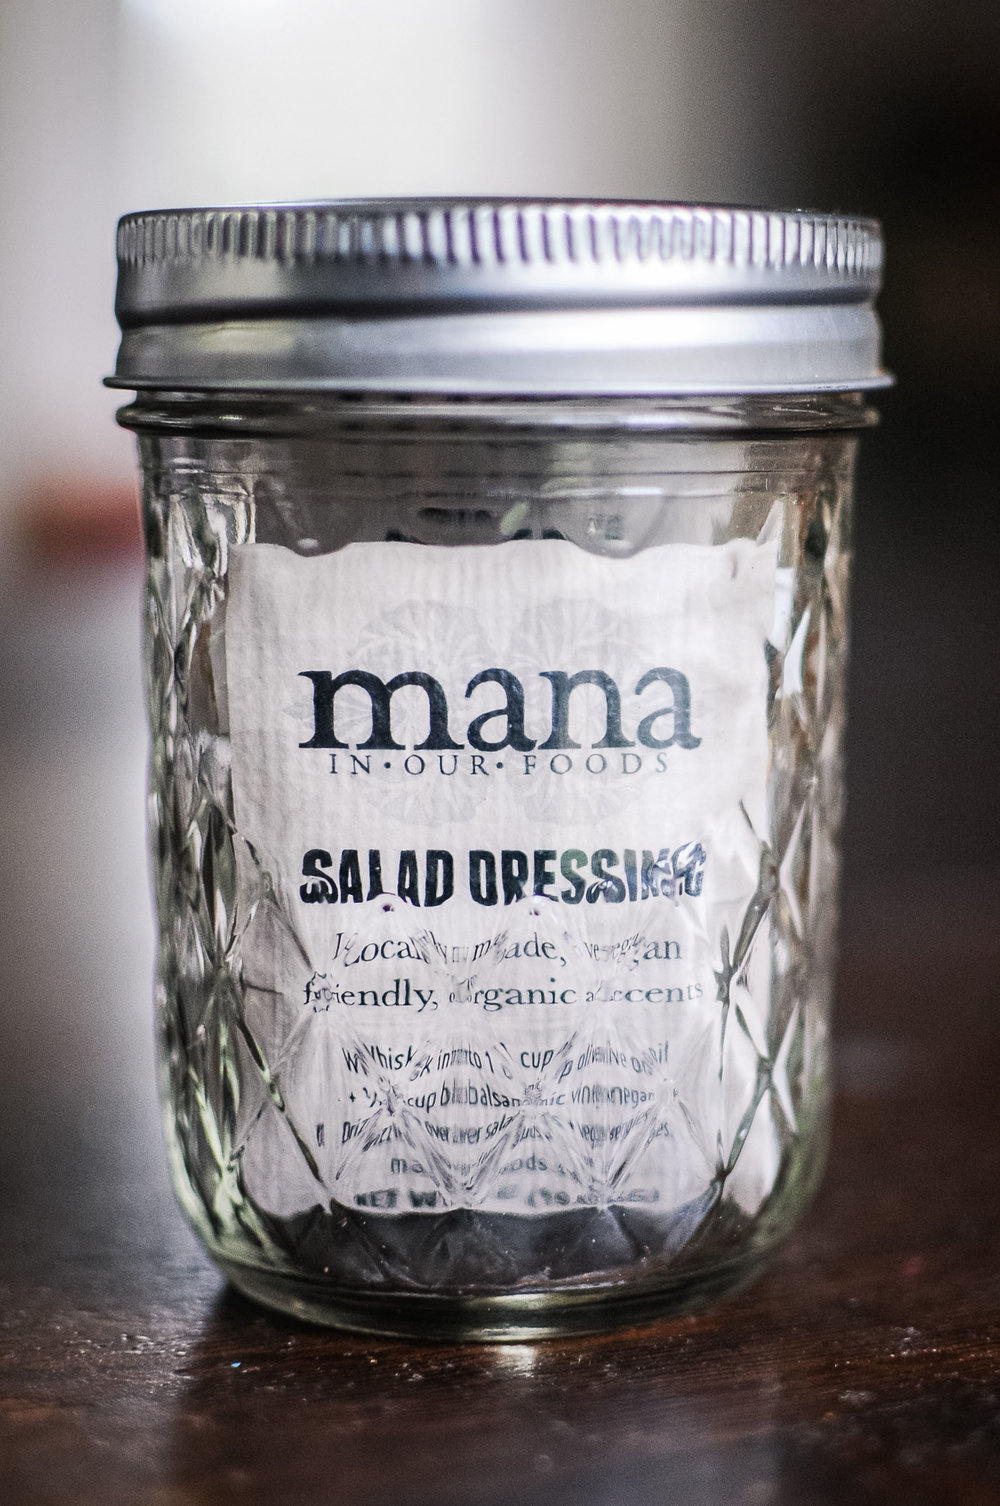 spice packets, mana in our foods